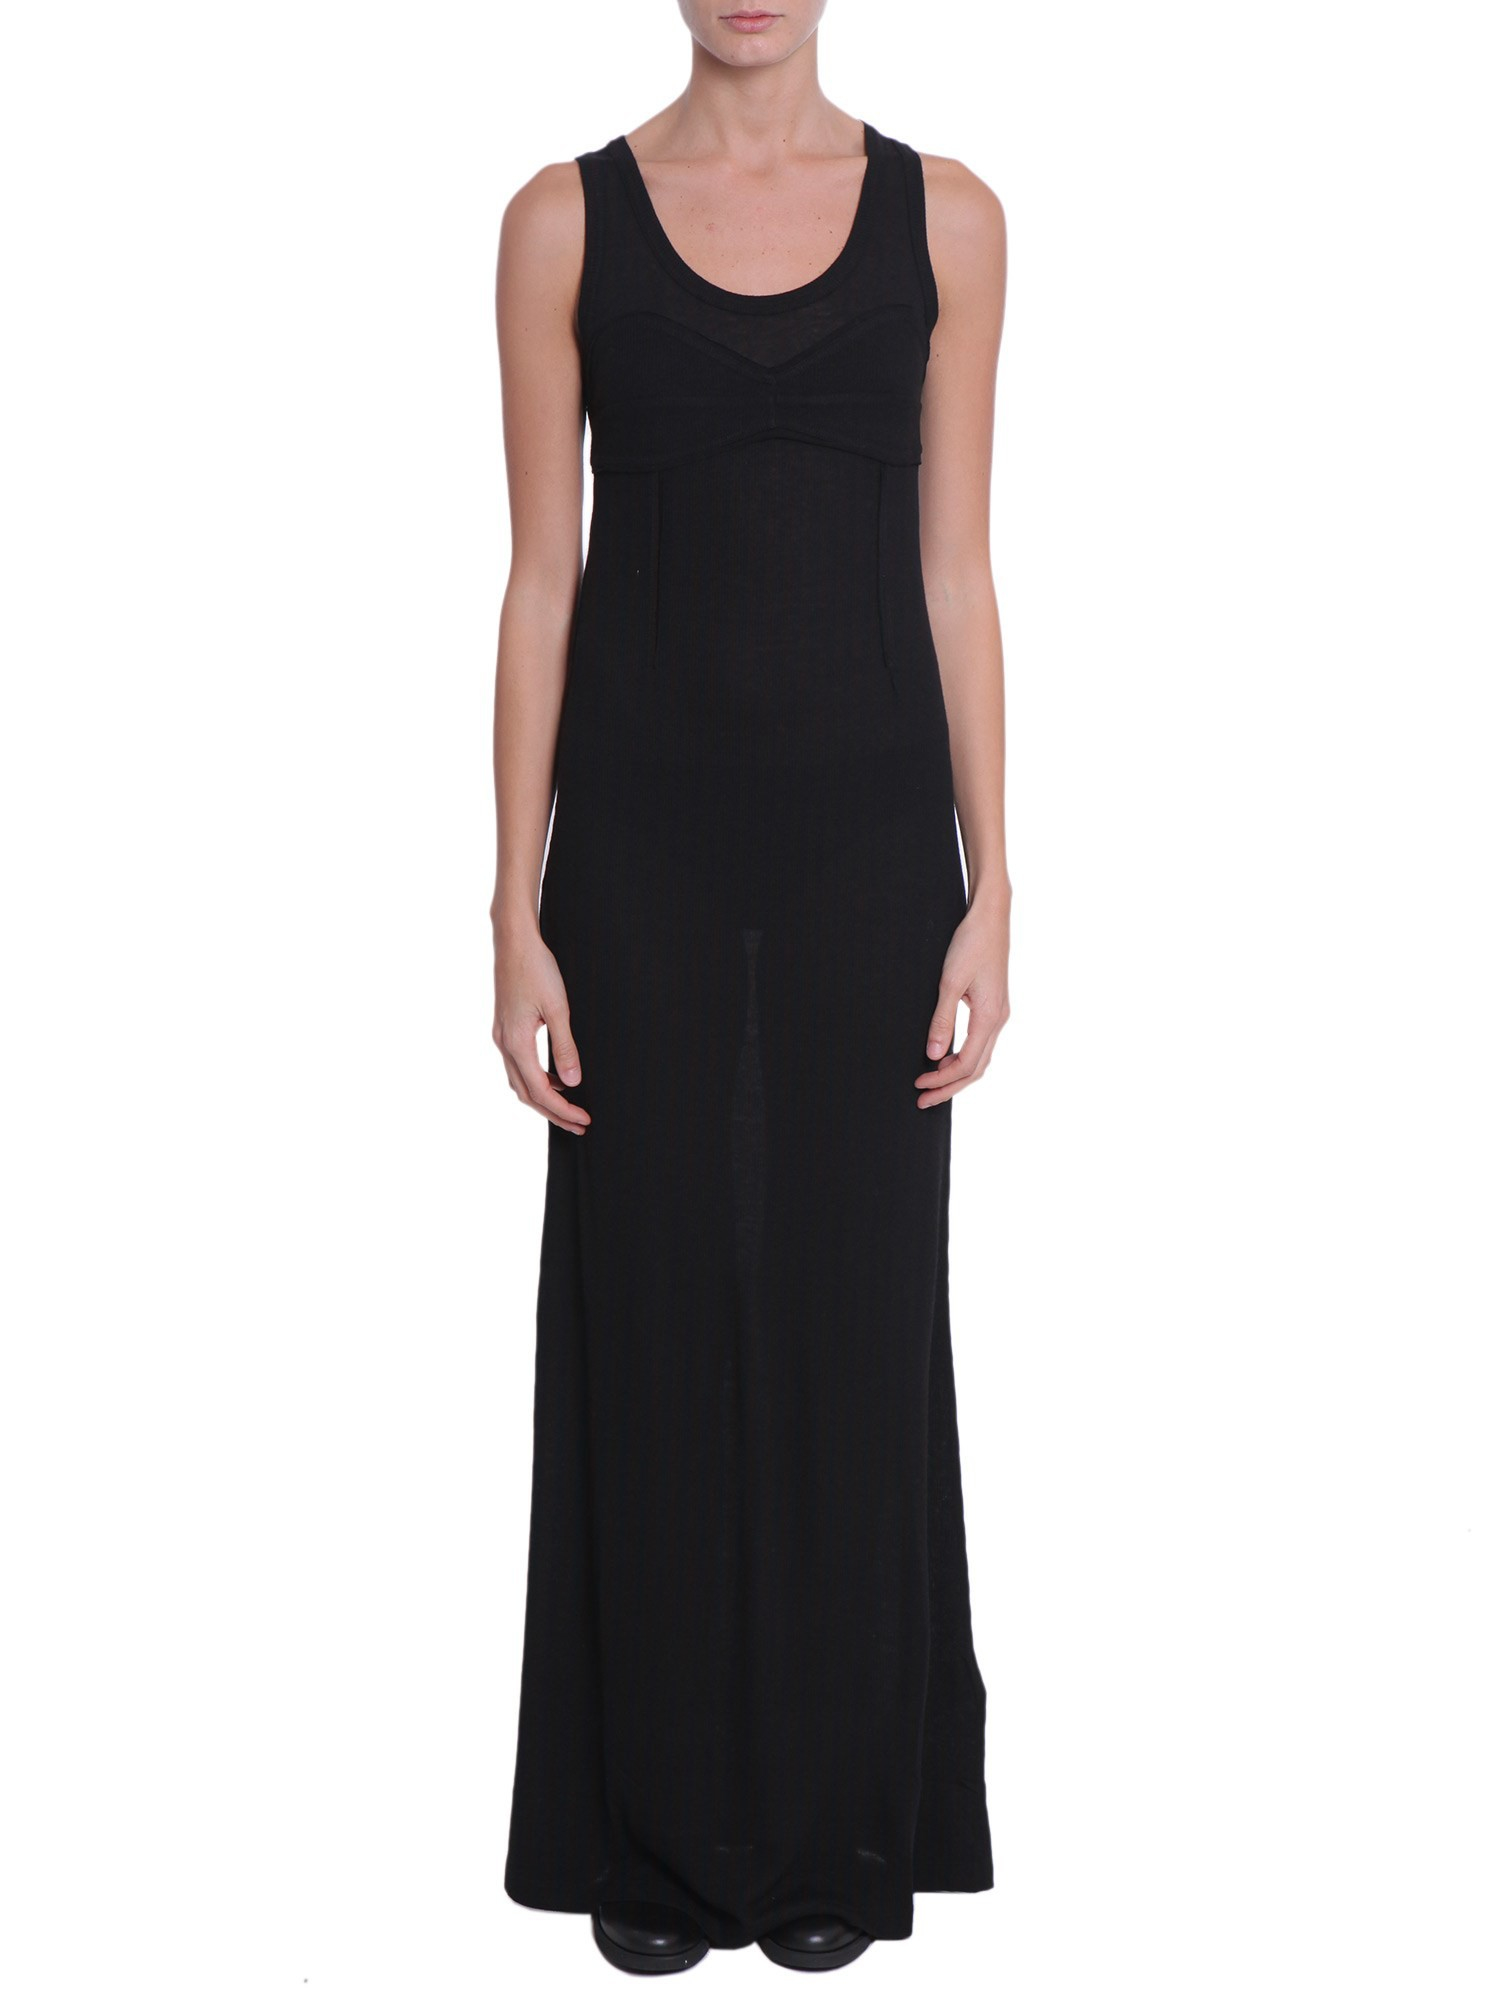 Mm6 by maison martin margiela long dress in black nero for Mm6 maison margiela